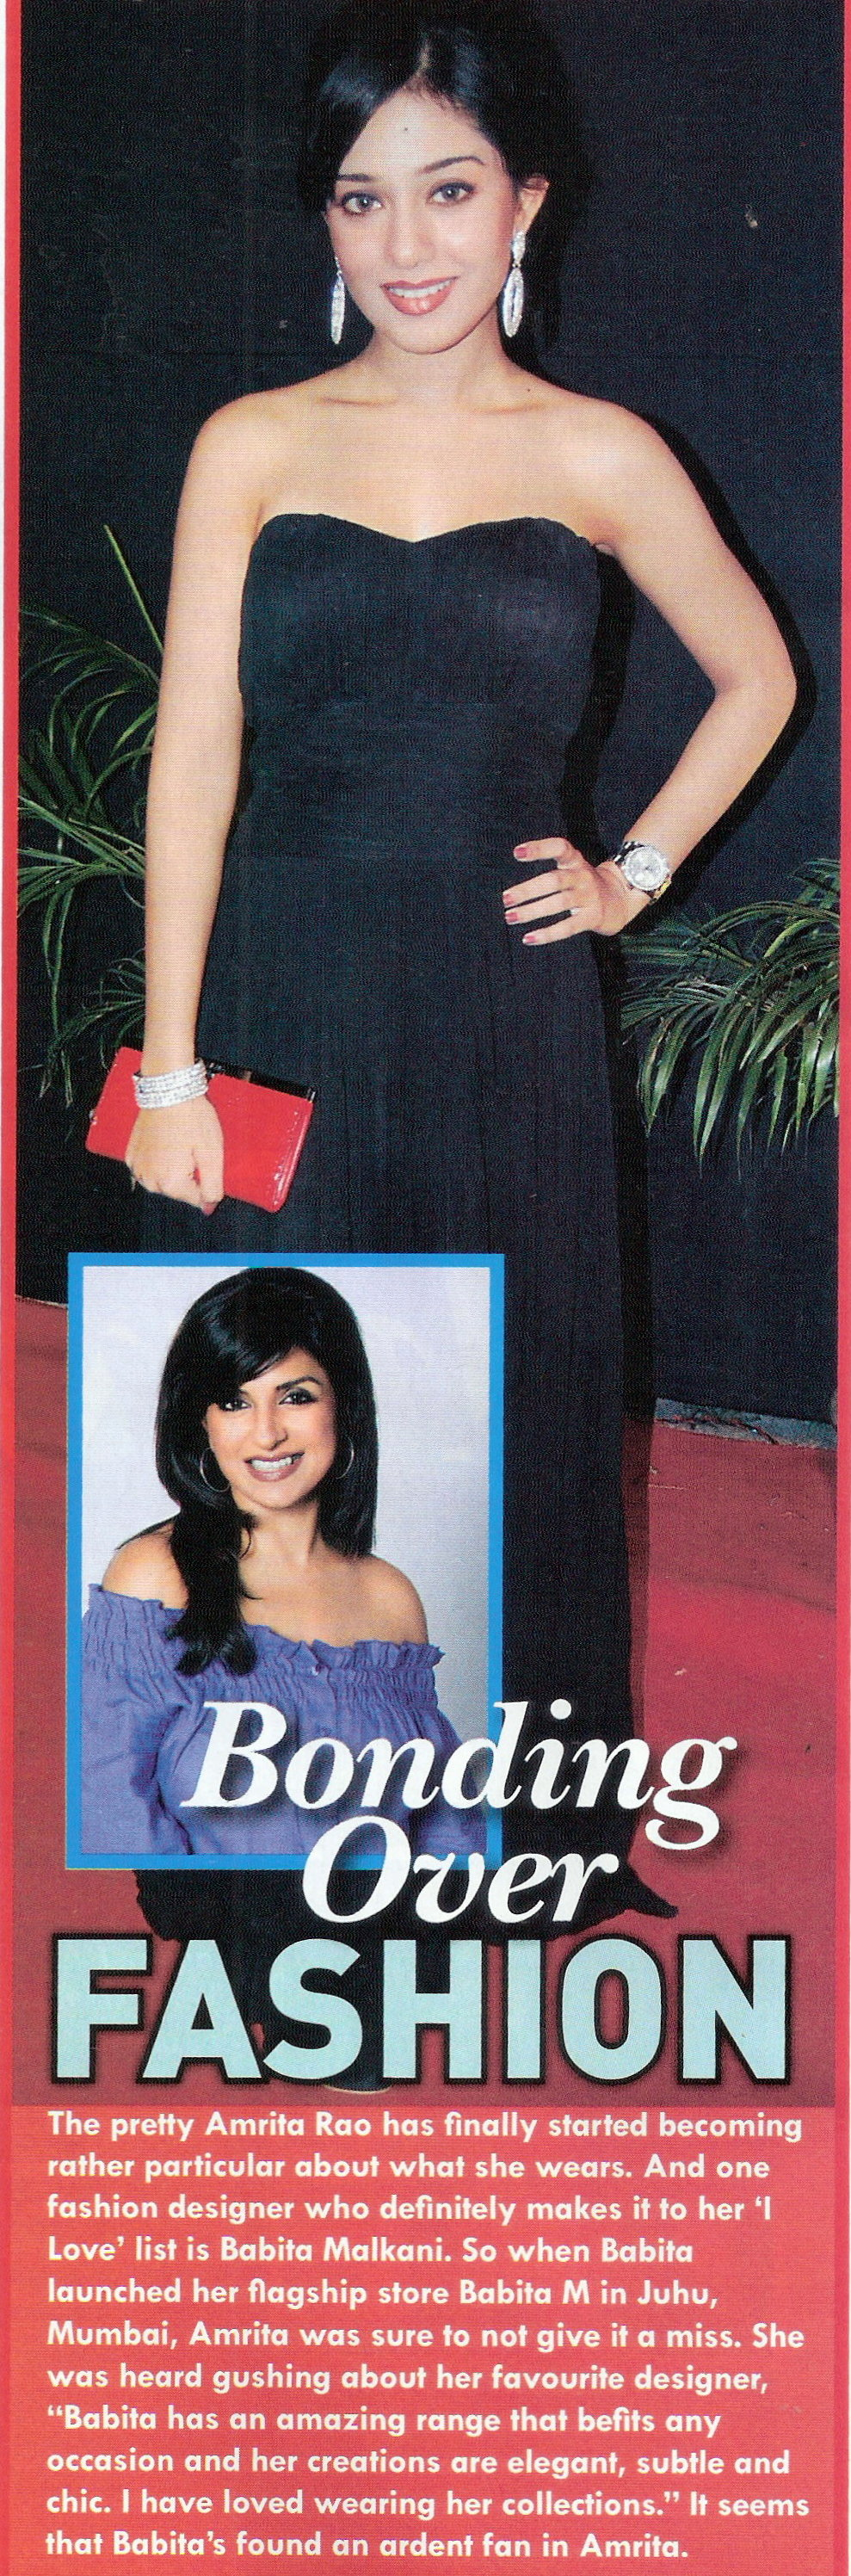 Babita M featured in the year 2010